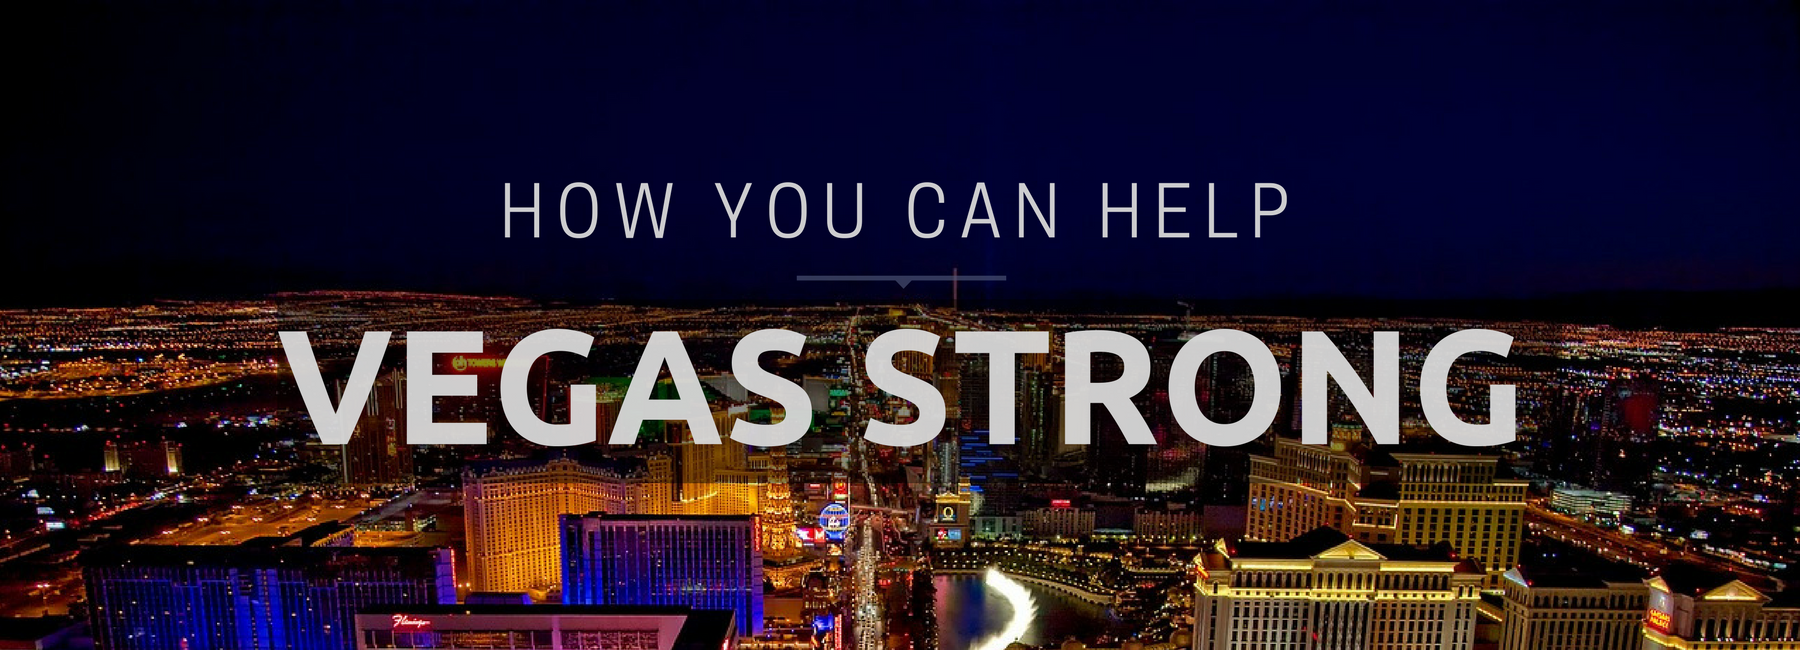 Vegas Strong how you can help banner | the lonely tribalist